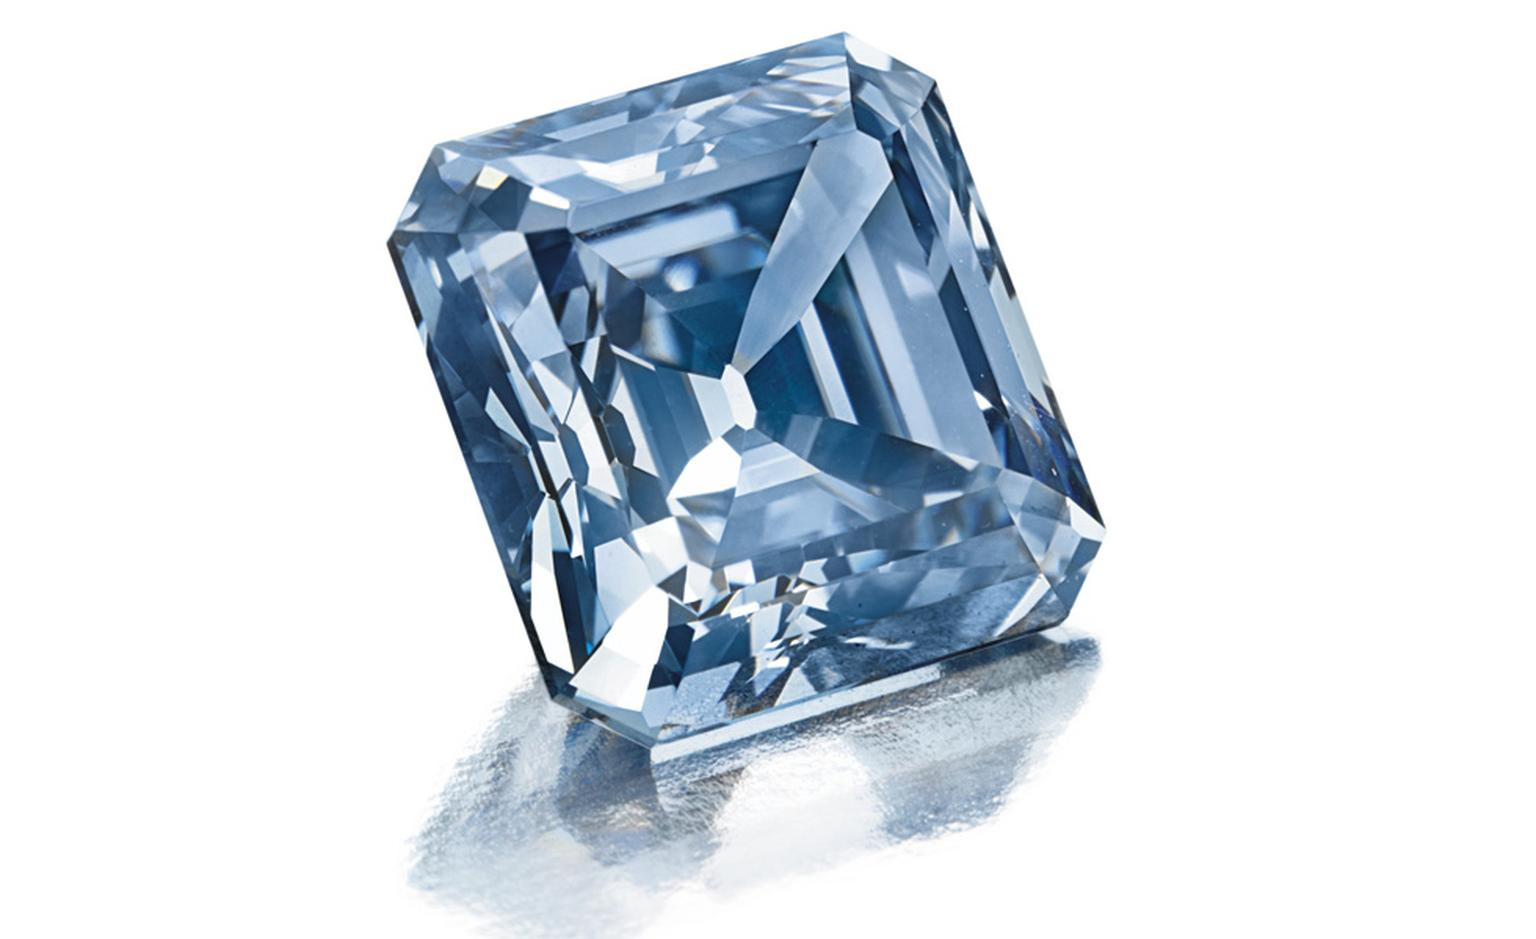 Lot 292 (est $2,000,000-$3,000,000) is a superb internally flawless fancy vivid blue diamond ring. The diamond weighs approximately 3.25 carats. It is an incredibly beautiful color. Christies Images Ltd. 2010. SOLD FOR $3.666.500